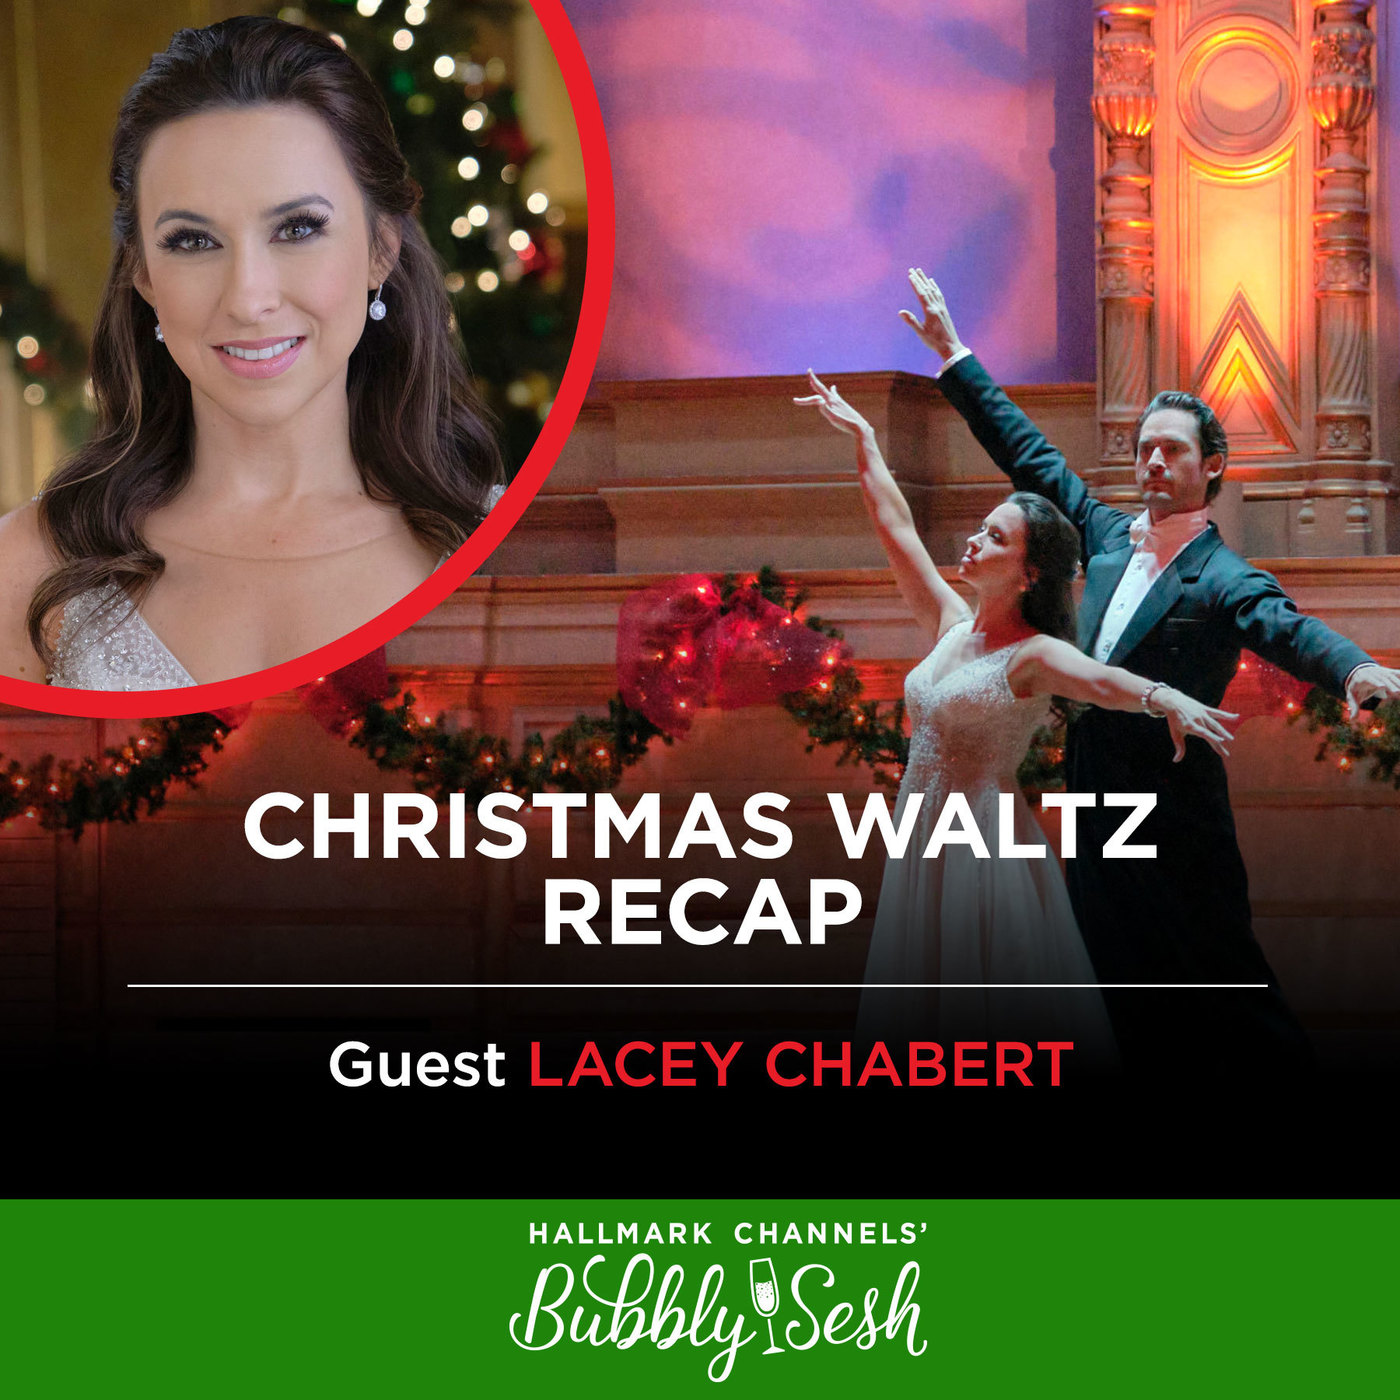 Christmas Waltz Recap with Guest Lacey Chabert